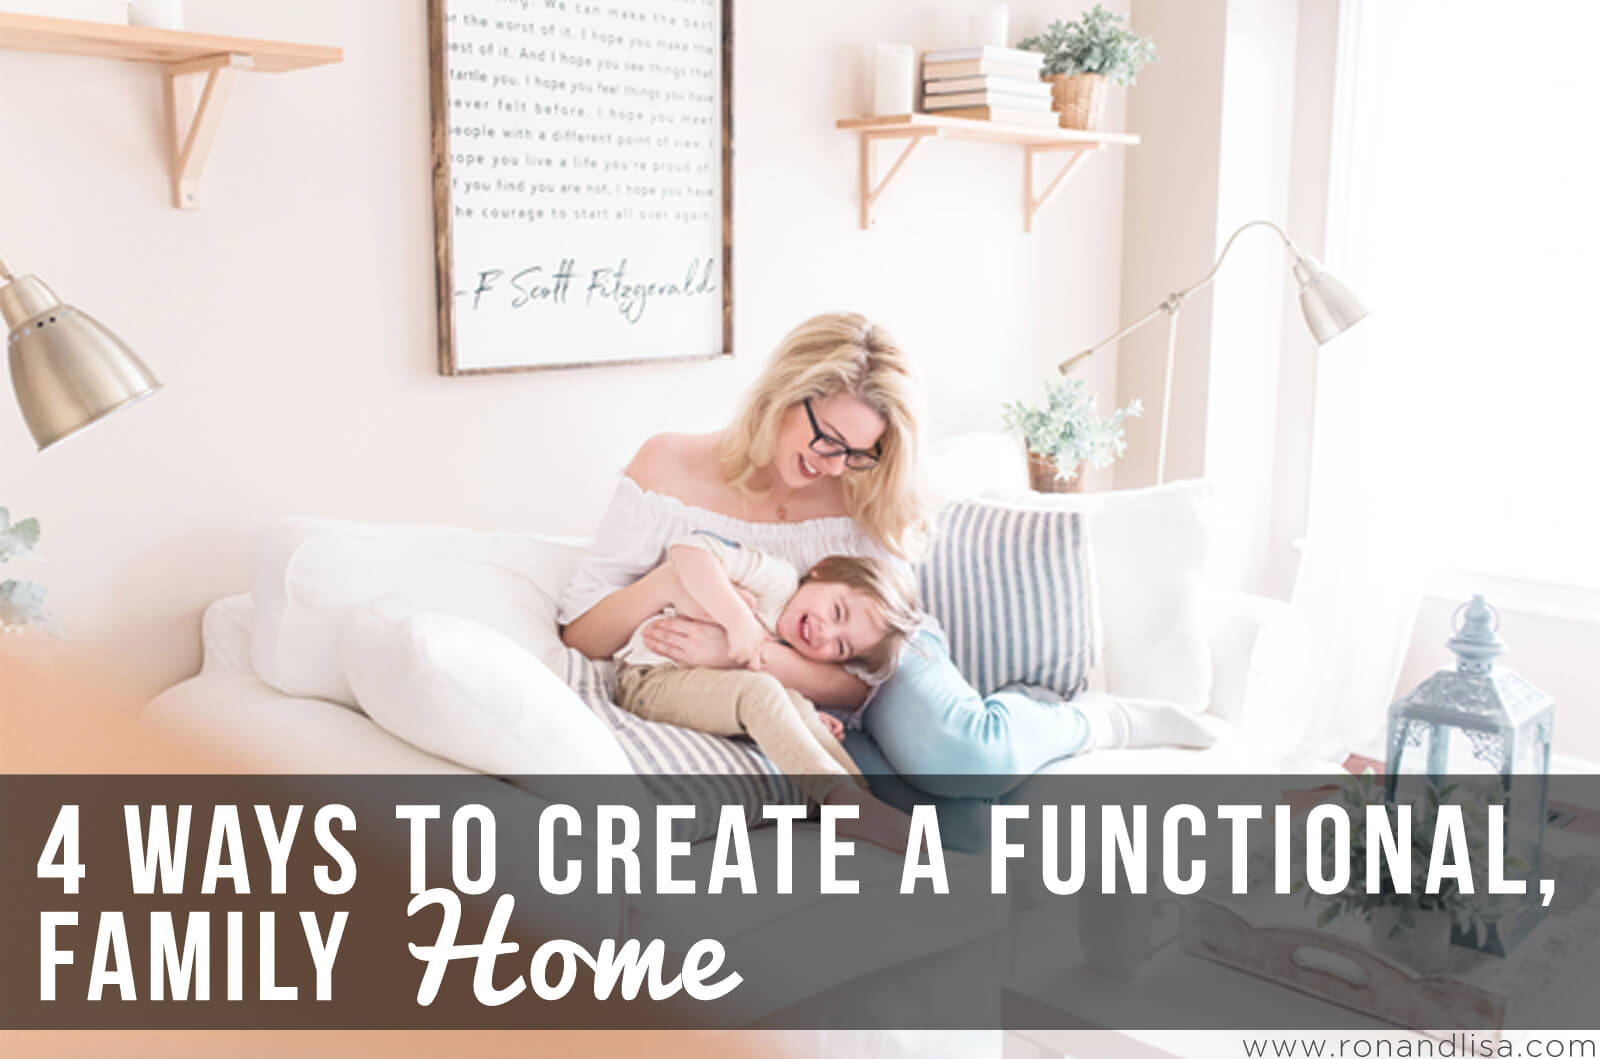 4 Ways to Create a Functional, Family Home